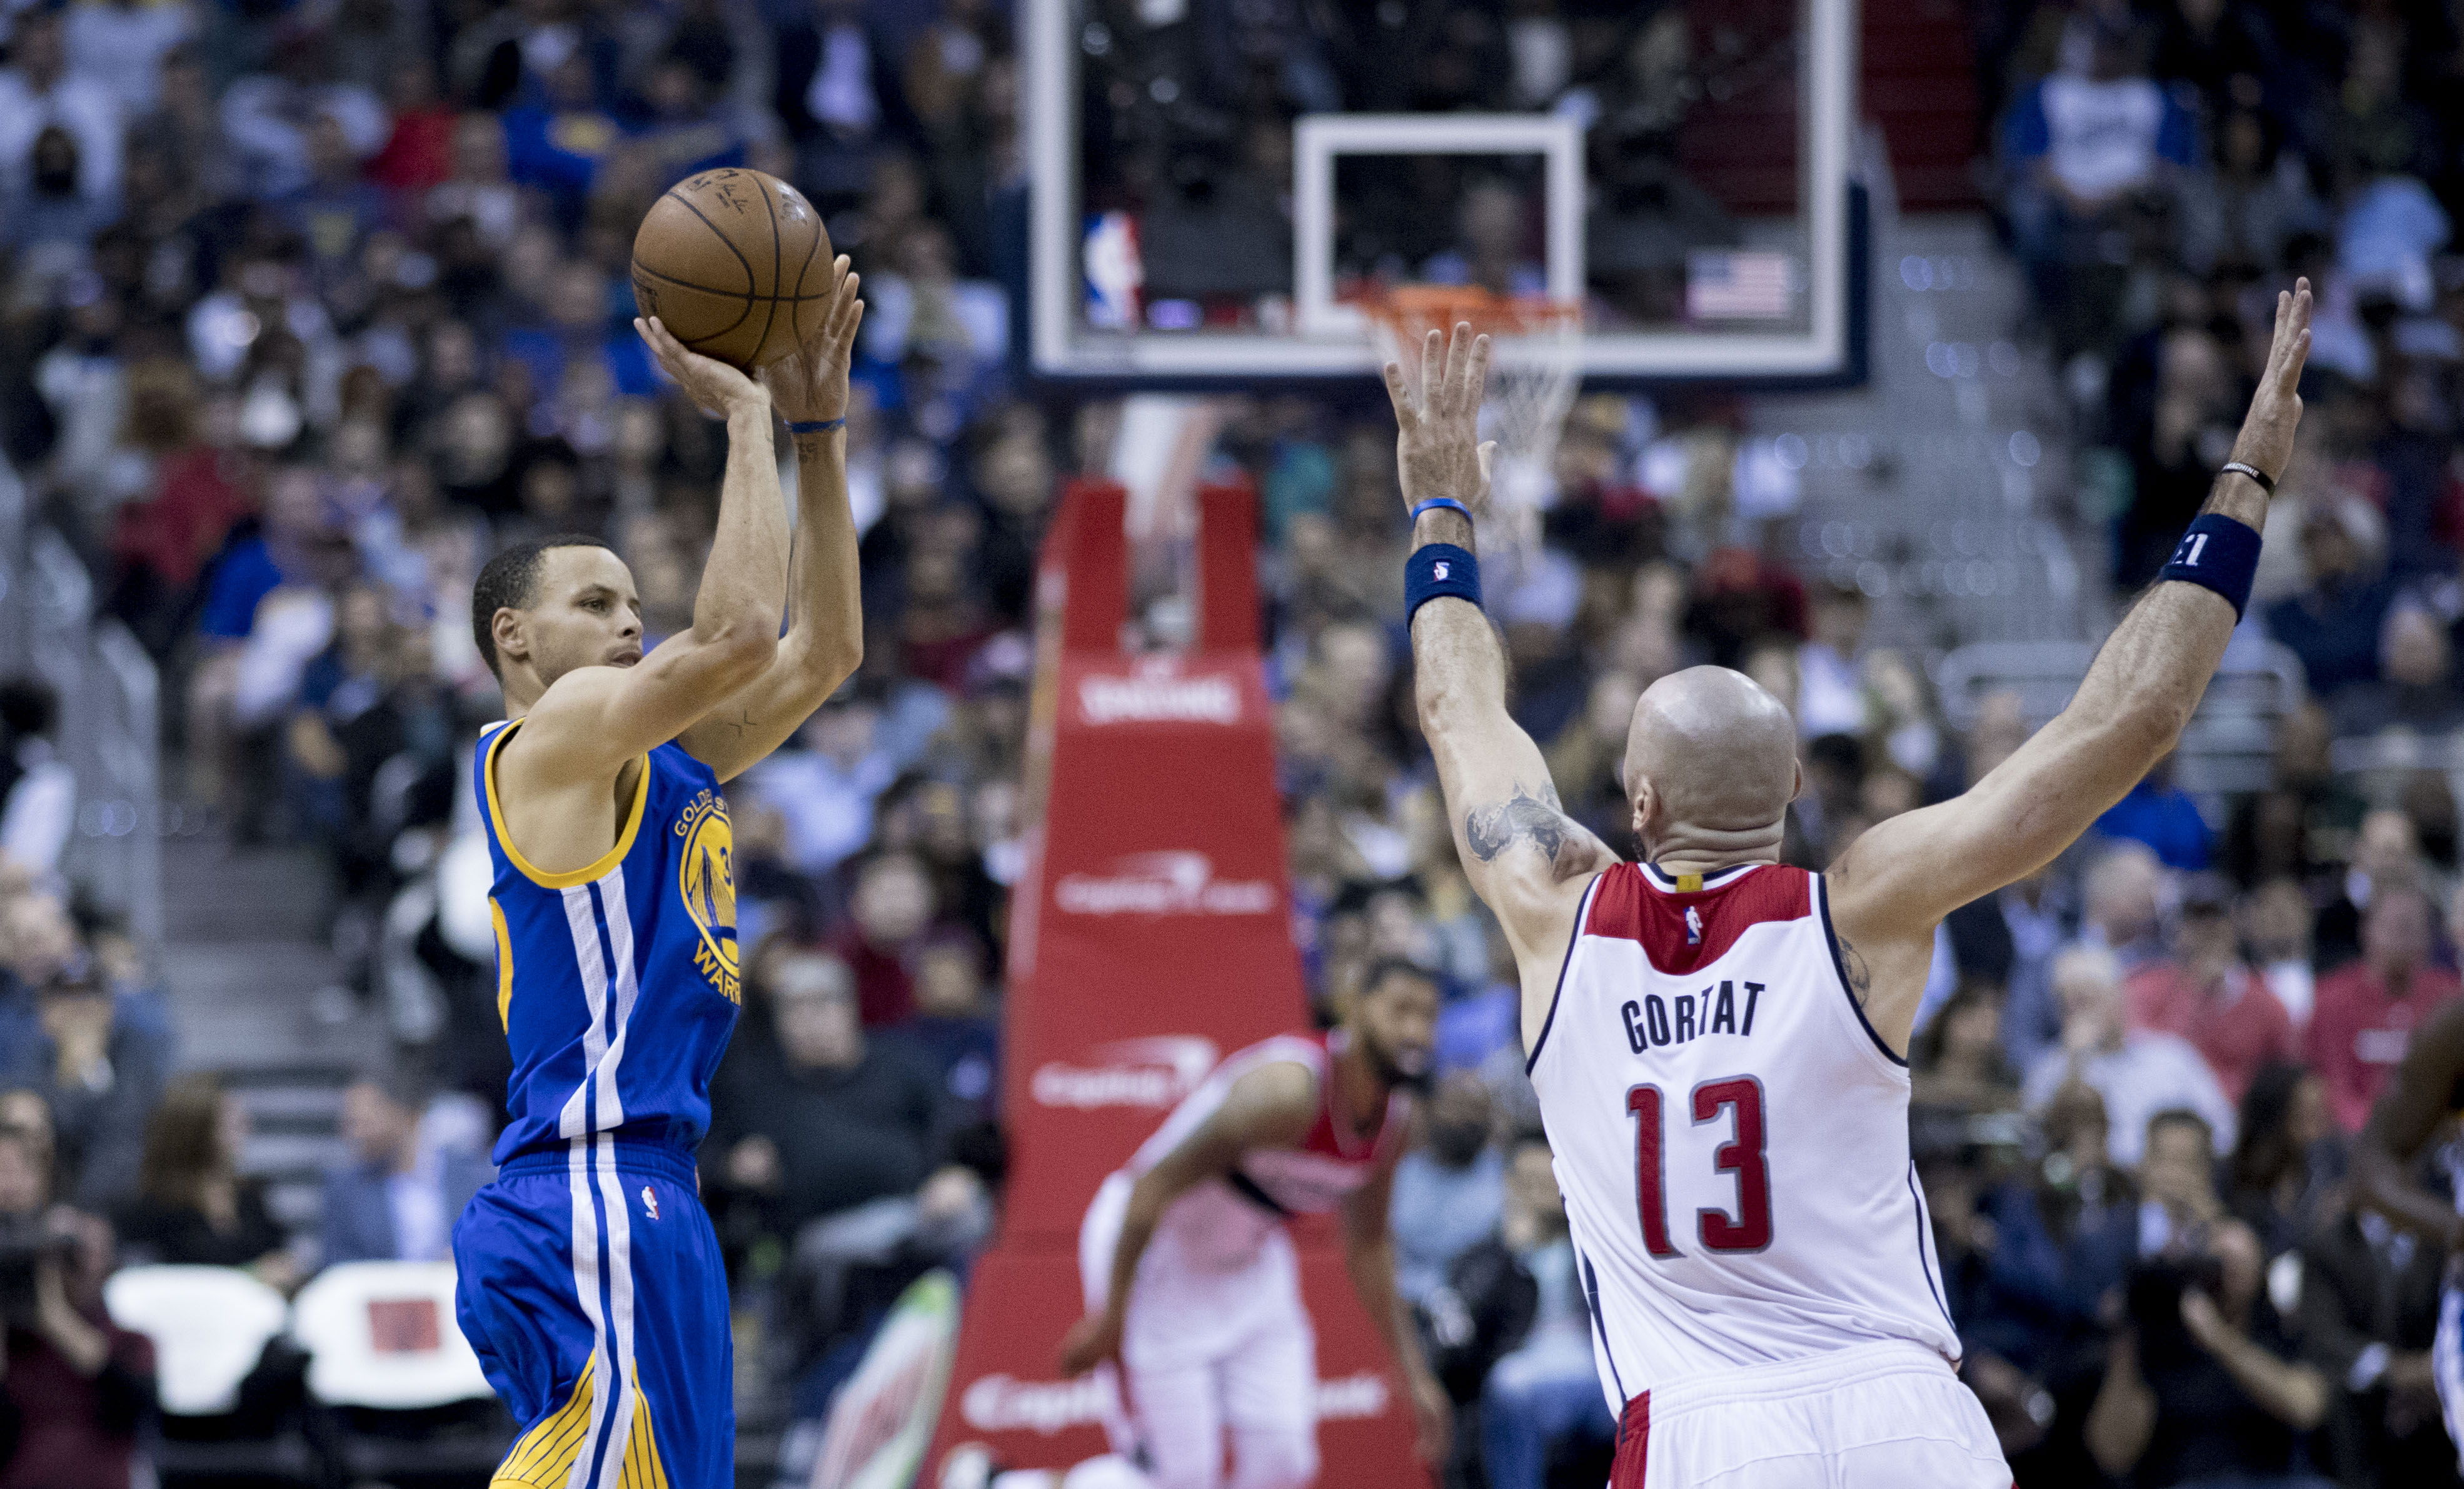 In the foreground there are two basketball players. Stephen Curry is on the left and jumping into the air with the basketball in his hands. Marcin Gortat is on the right, facing away from the camera and his arms are in the air as he runs towards Stephen.